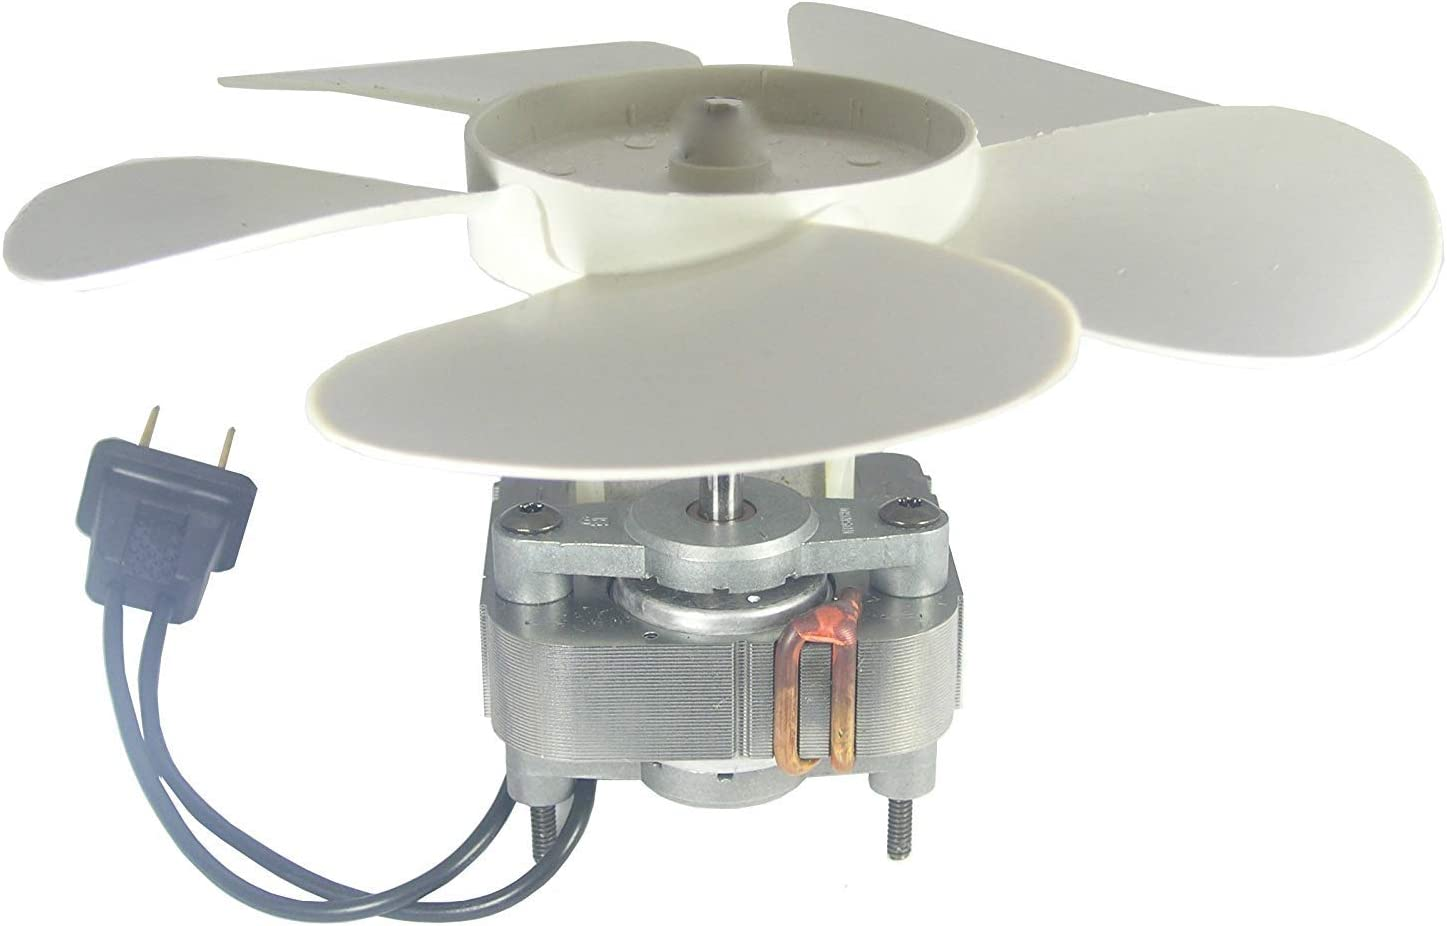 Endurance Pro S1200A000 Bathroom Fan Motor Assembly Replacement for Broan NuTone